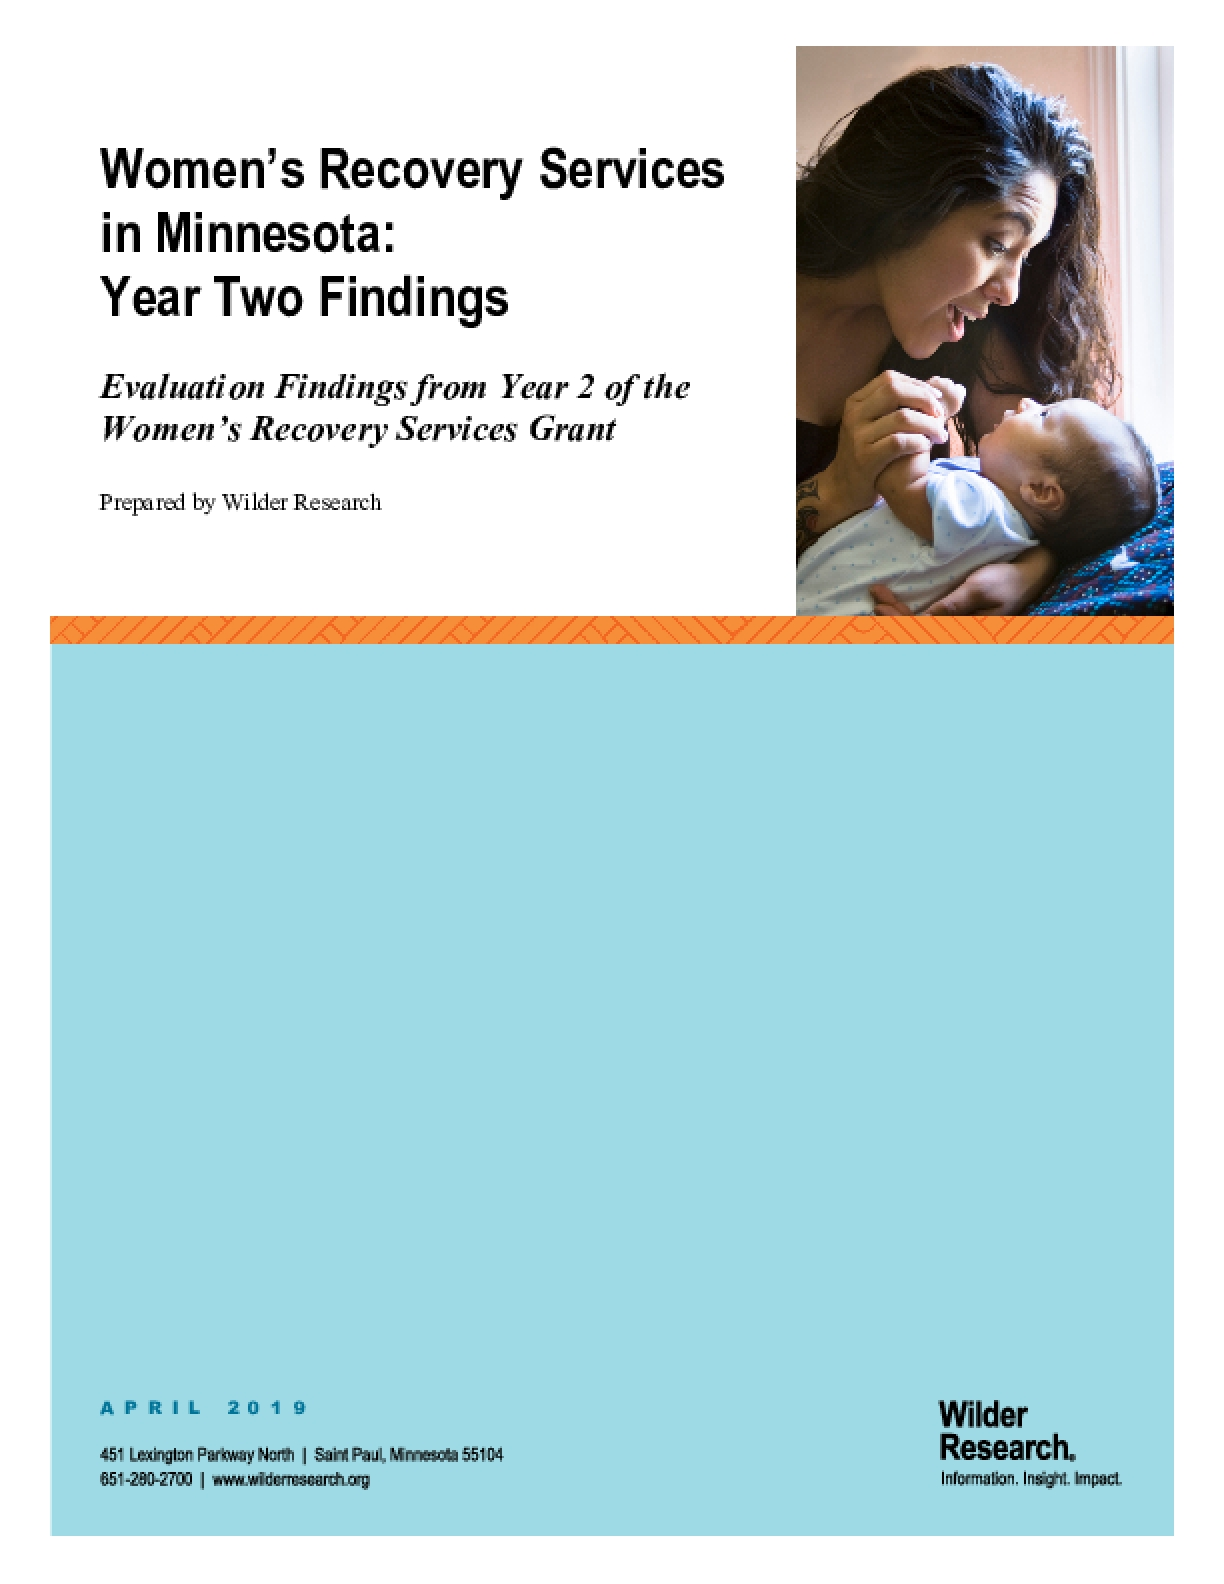 Women's Recovery Services in Minnesota: Year Two Findings